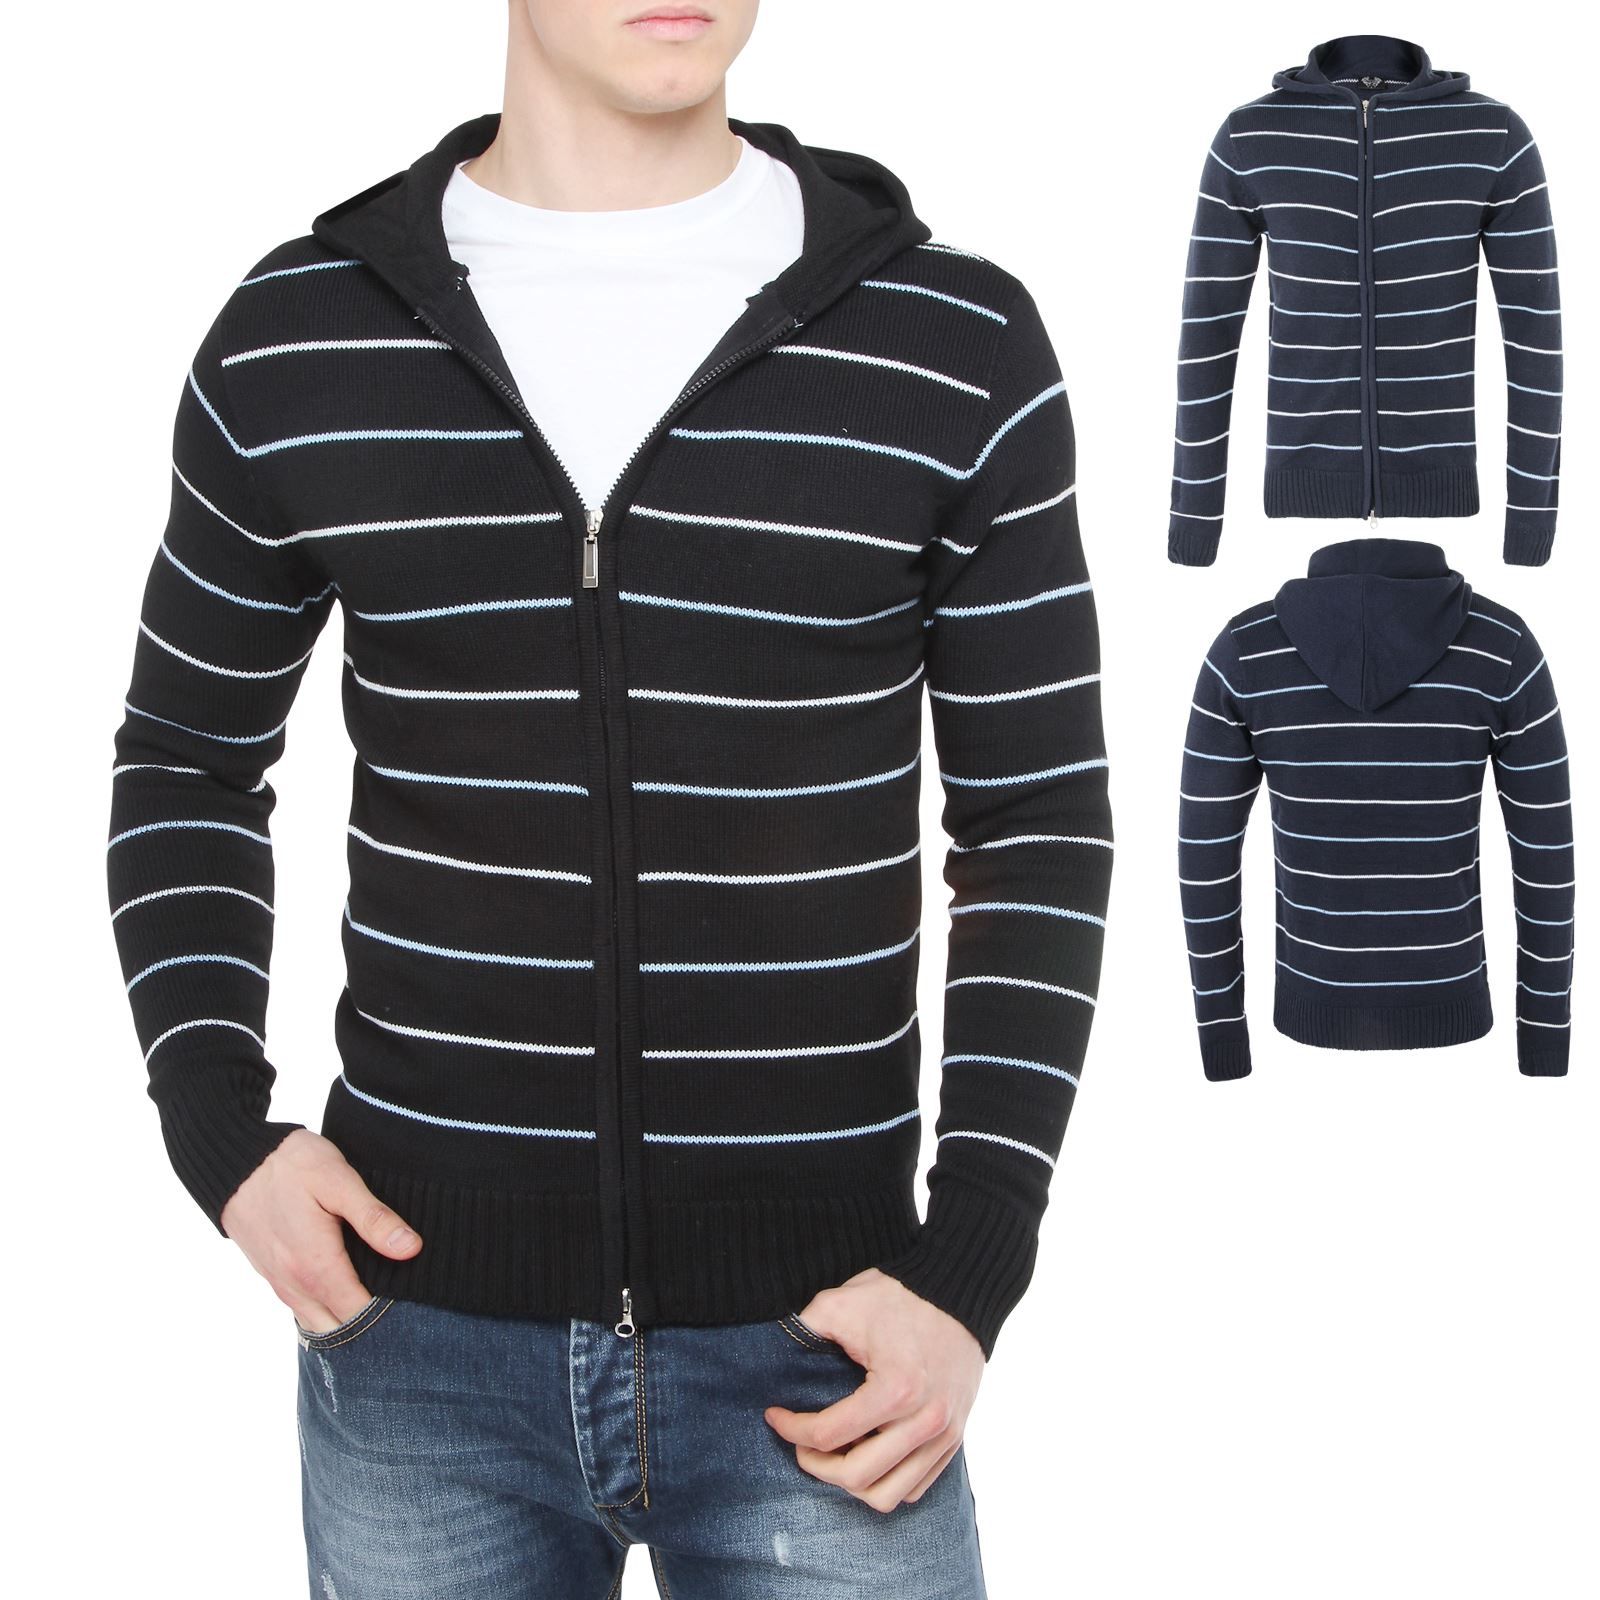 Mens Striped Knitted Hooded Cardigan Jumper Sweater Hoodie ...